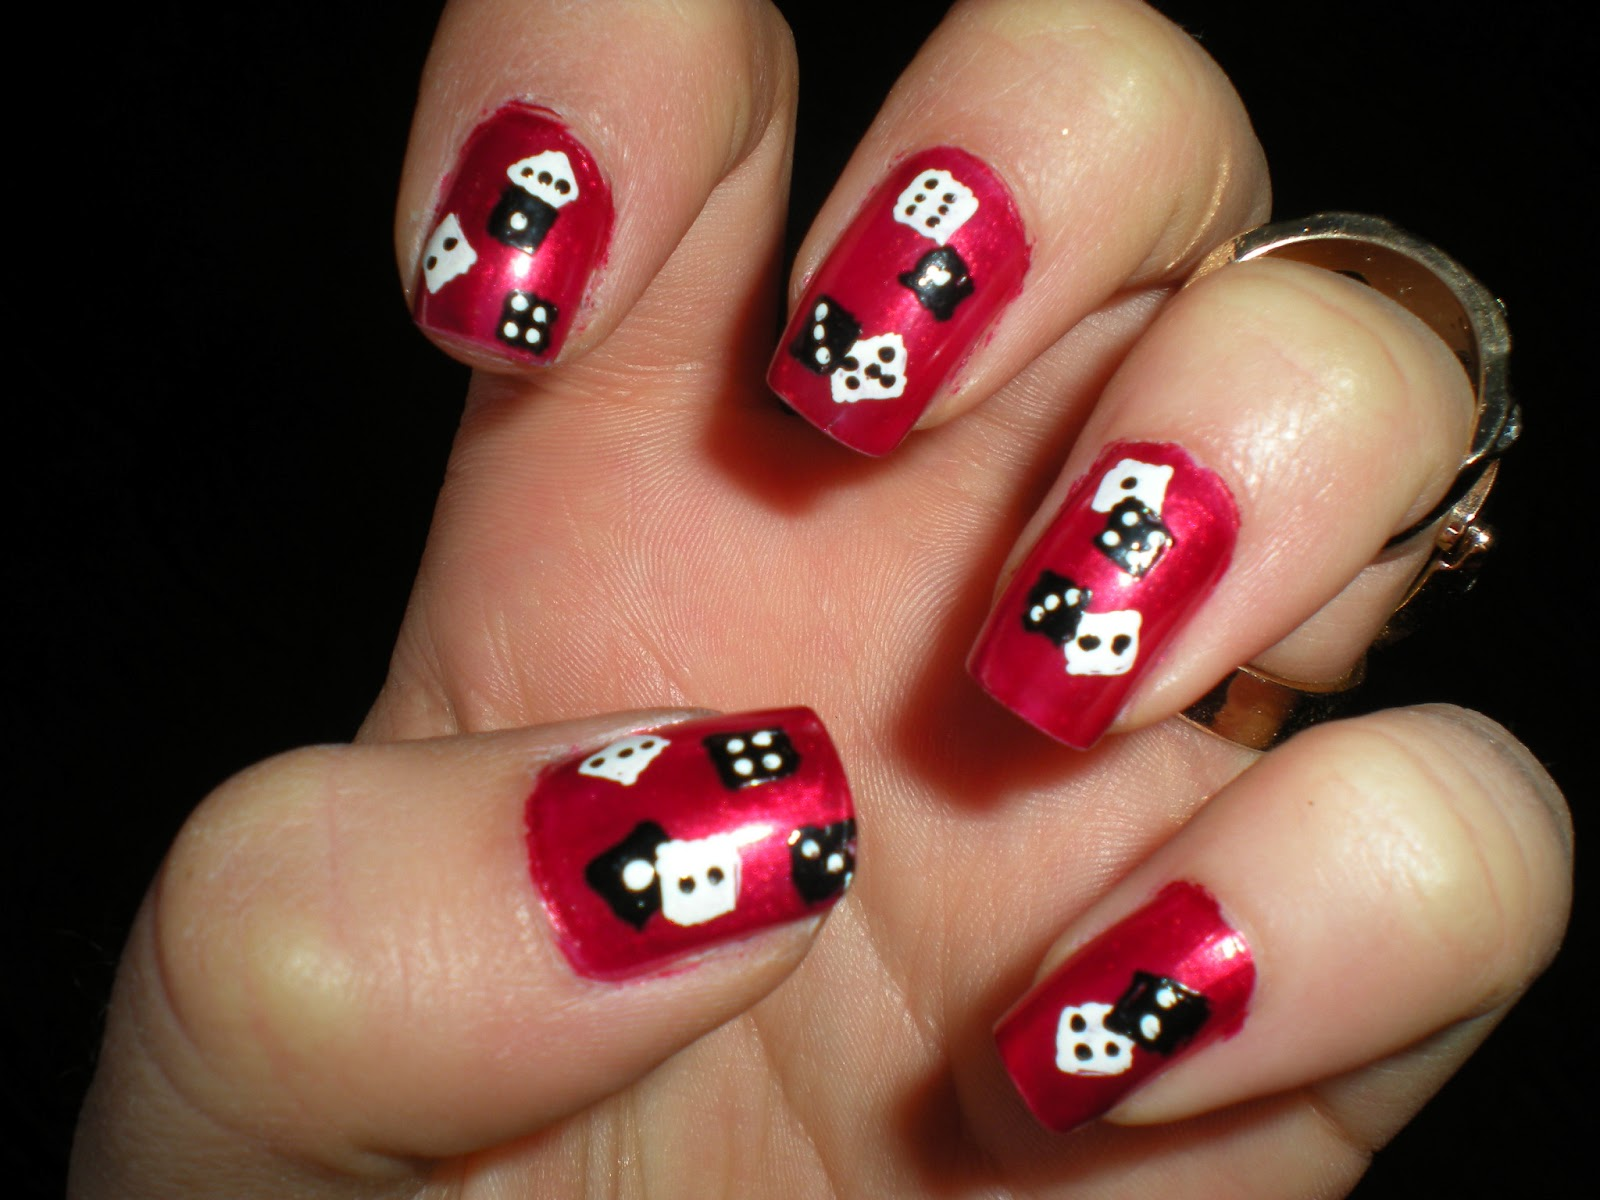 Nails design las vegas nv beautify themselves with sweet nails vegas nails prinsesfo Image collections